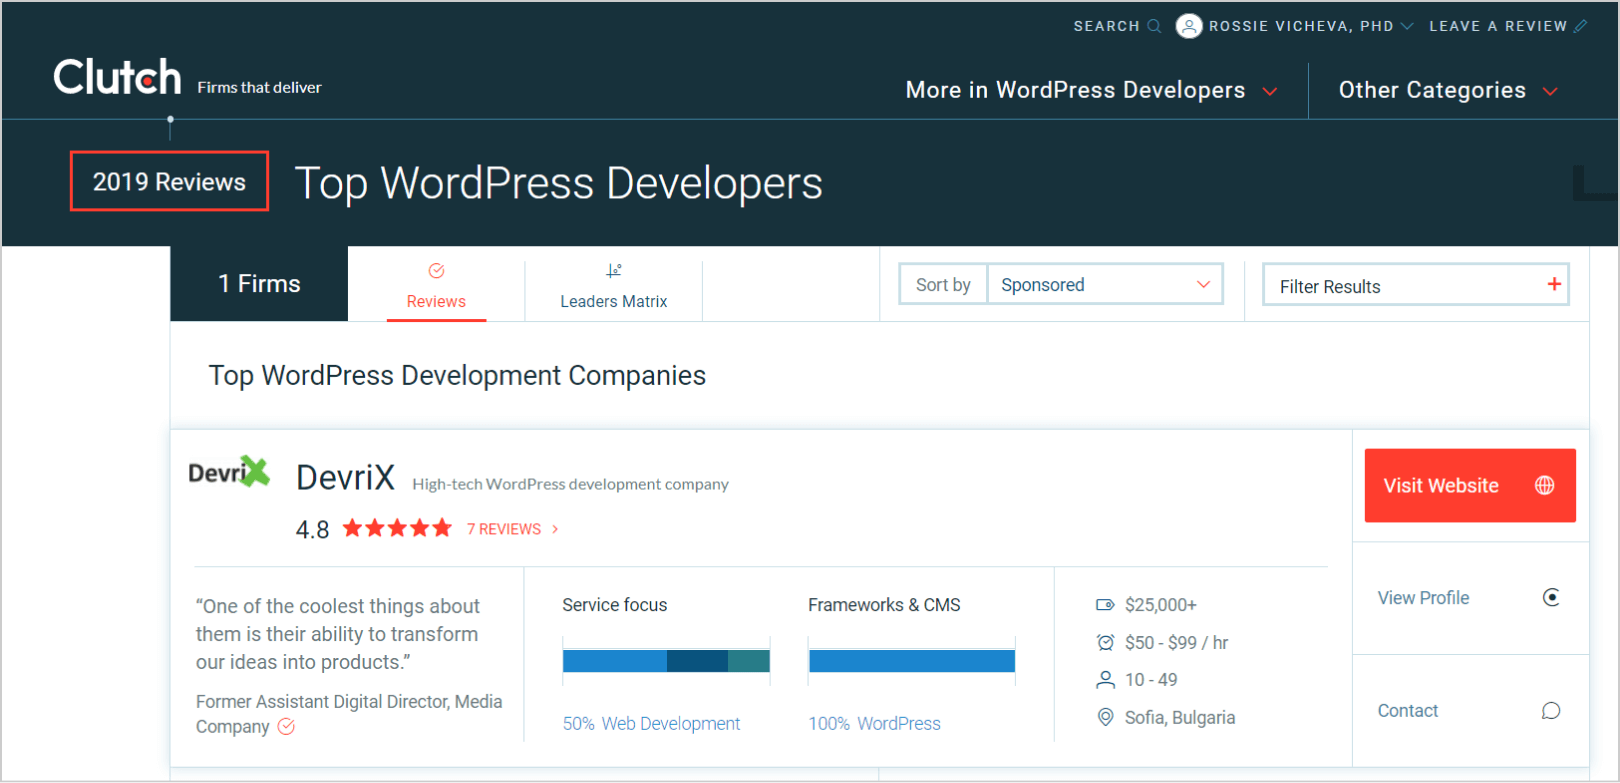 DevriX is the only Bulgarian company on the global top 30 WordPress leaders list